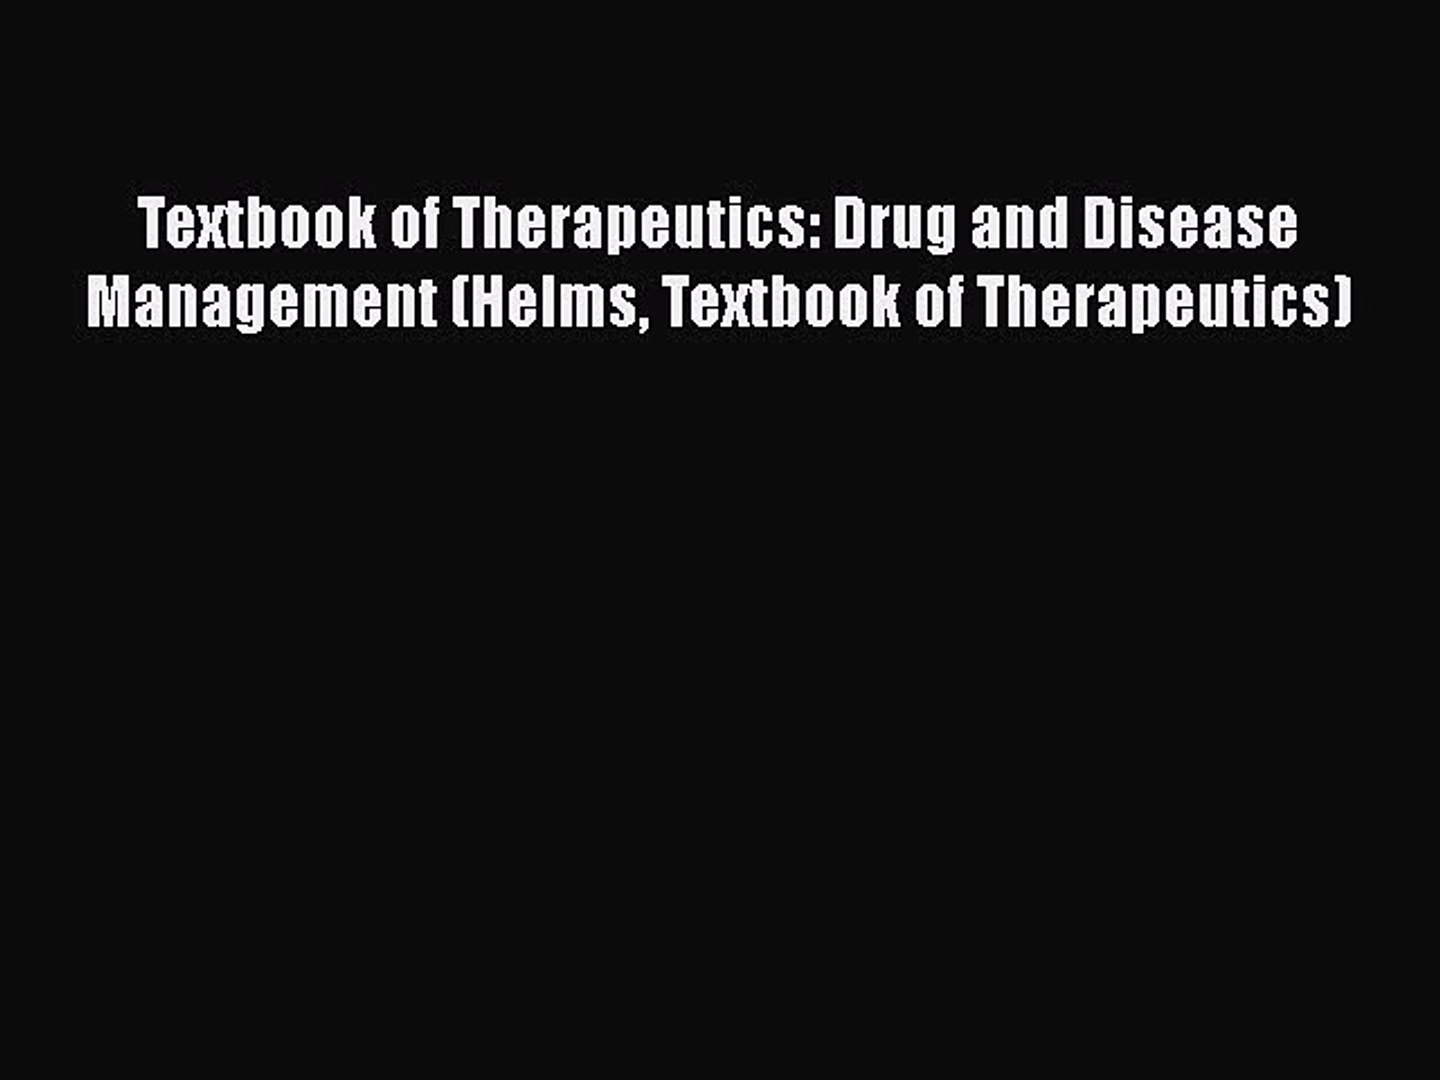 Download Textbook of Therapeutics: Drug and Disease Management (Helms Textbook of Therapeutics)